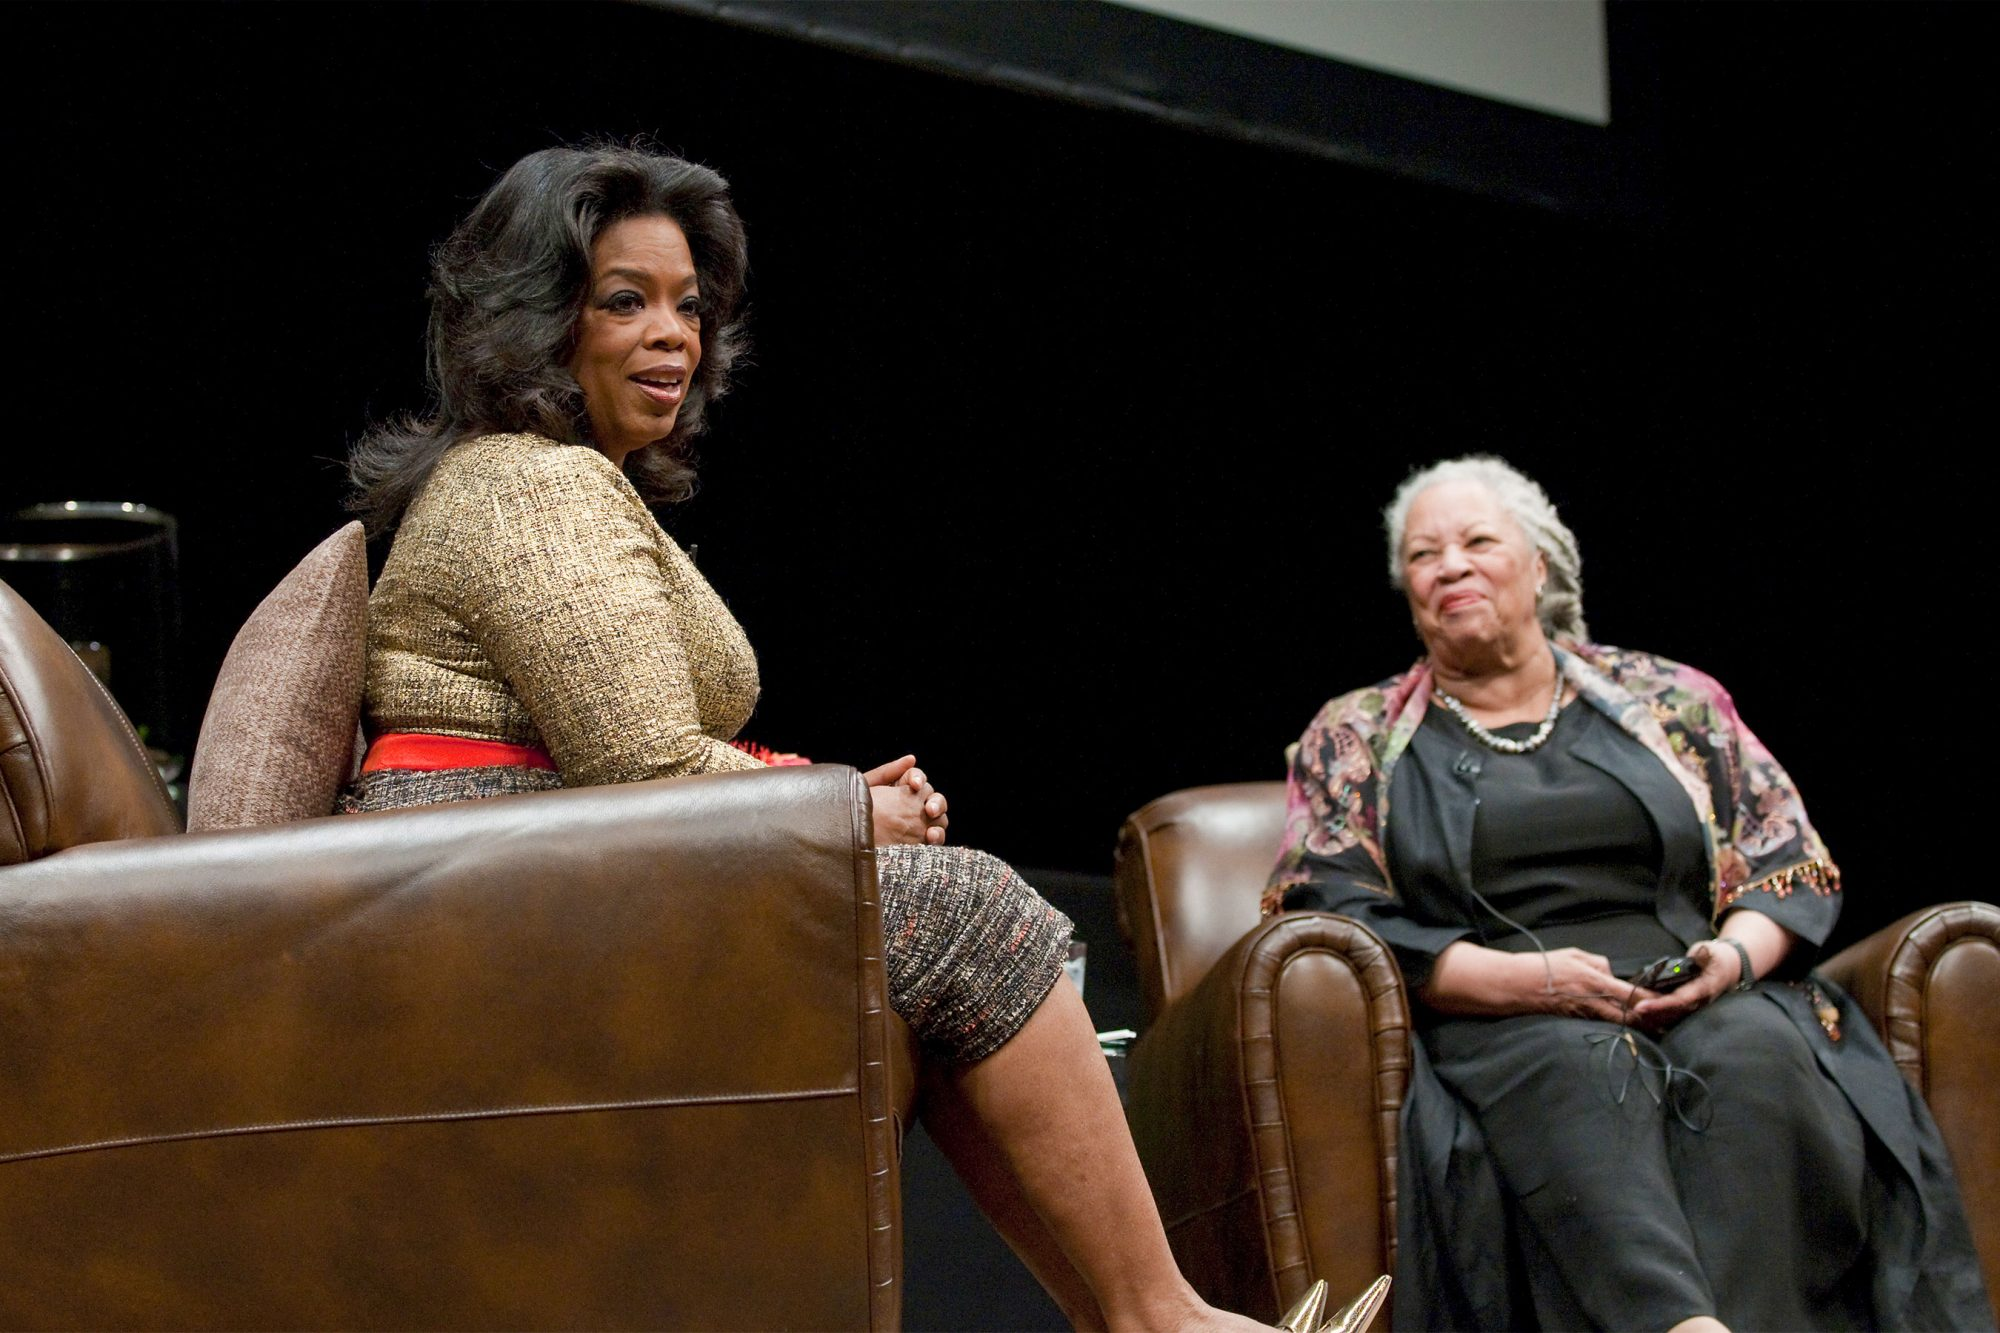 Oprah Winfrey and Toni Morrison attend the Carl Sandburg literary awards dinner at the University of Illinois at Chicago Forum on October 20, 2010 in Chicago, Illinois. (Photo by Daniel Boczarski/FilmMagic)